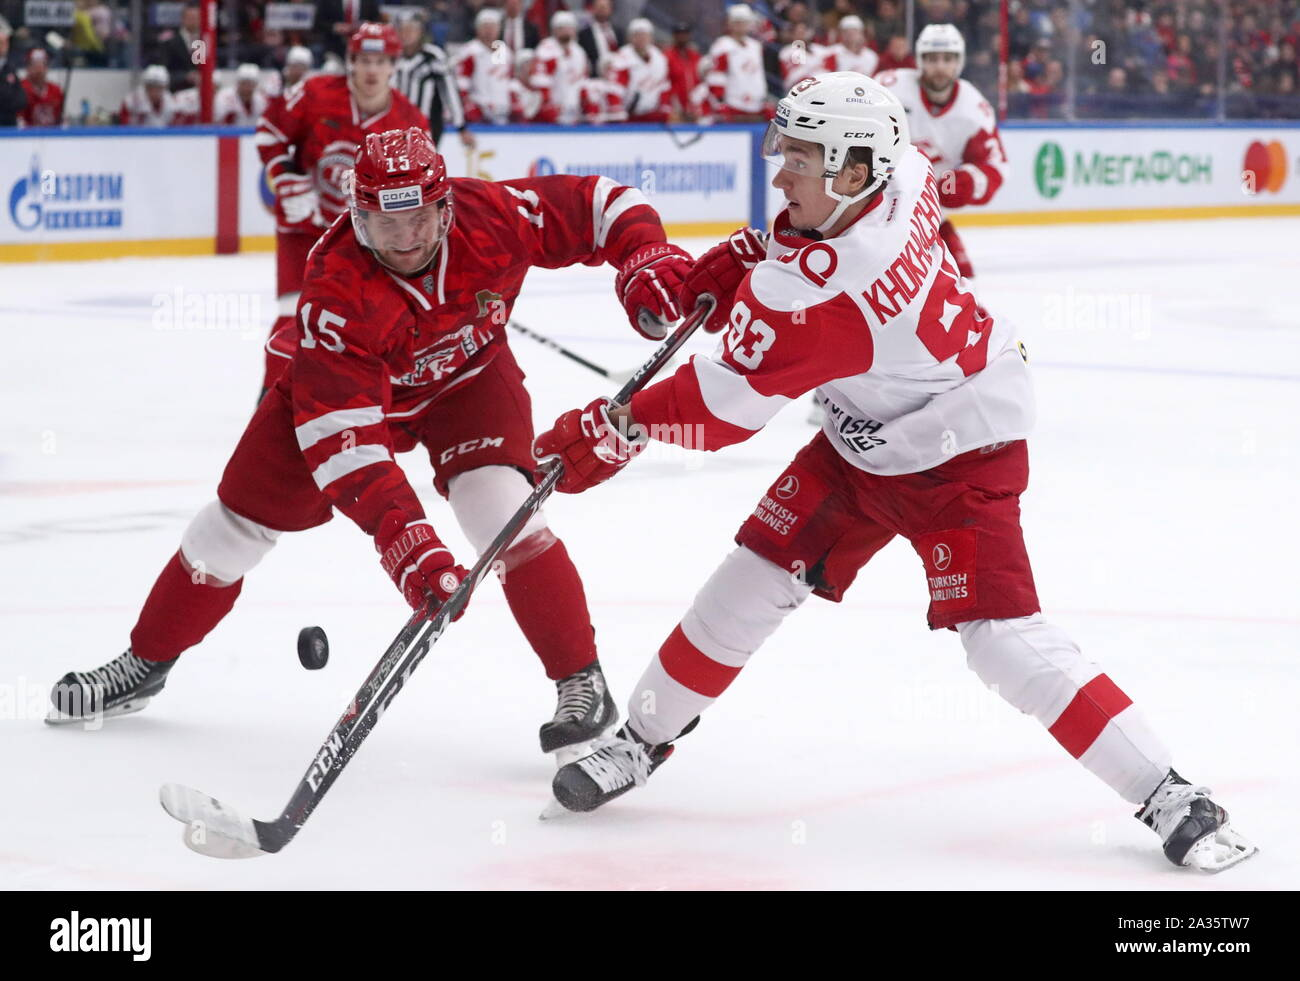 Moscow, Russia. 05th Oct, 2019. HC Vityaz Moscow Region's Jakub Jerabek (L) and HC Spartak Moscow's Alexander Khokhlachyov in action in their 2019/20 KHL Regular Season ice hockey match, at the Vityaz Arena. Sergei Fadeichev/TASS Credit: ITAR-TASS News Agency/Alamy Live News Credit: ITAR-TASS News Agency/Alamy Live News Stock Photo